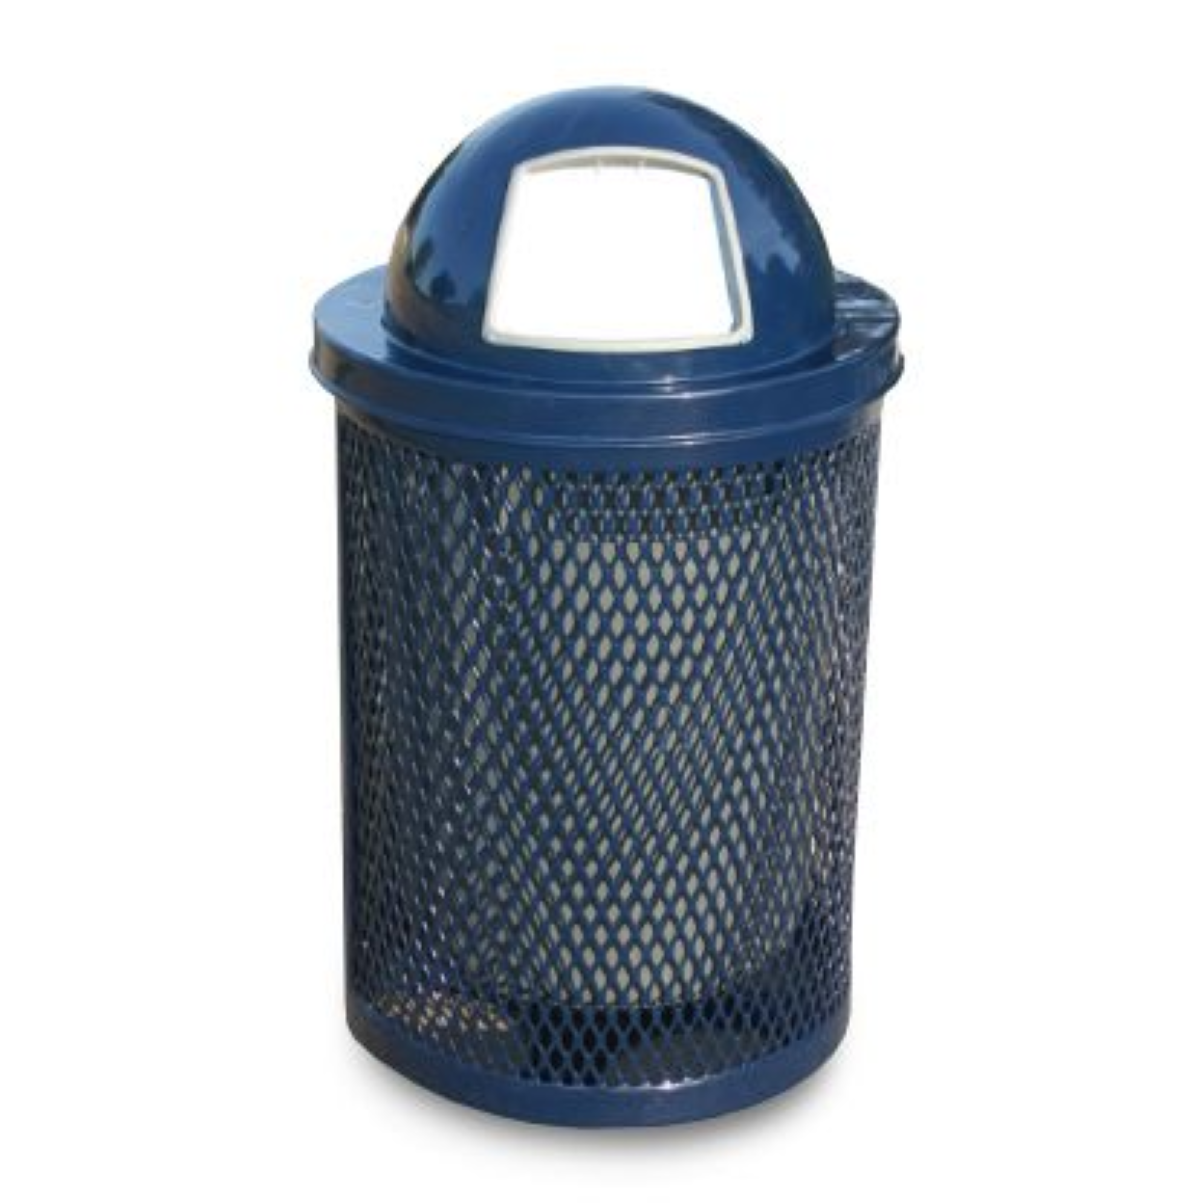 RRD32-A-00-000 (MYT) - 32 Gallon Round Trash Receptacle